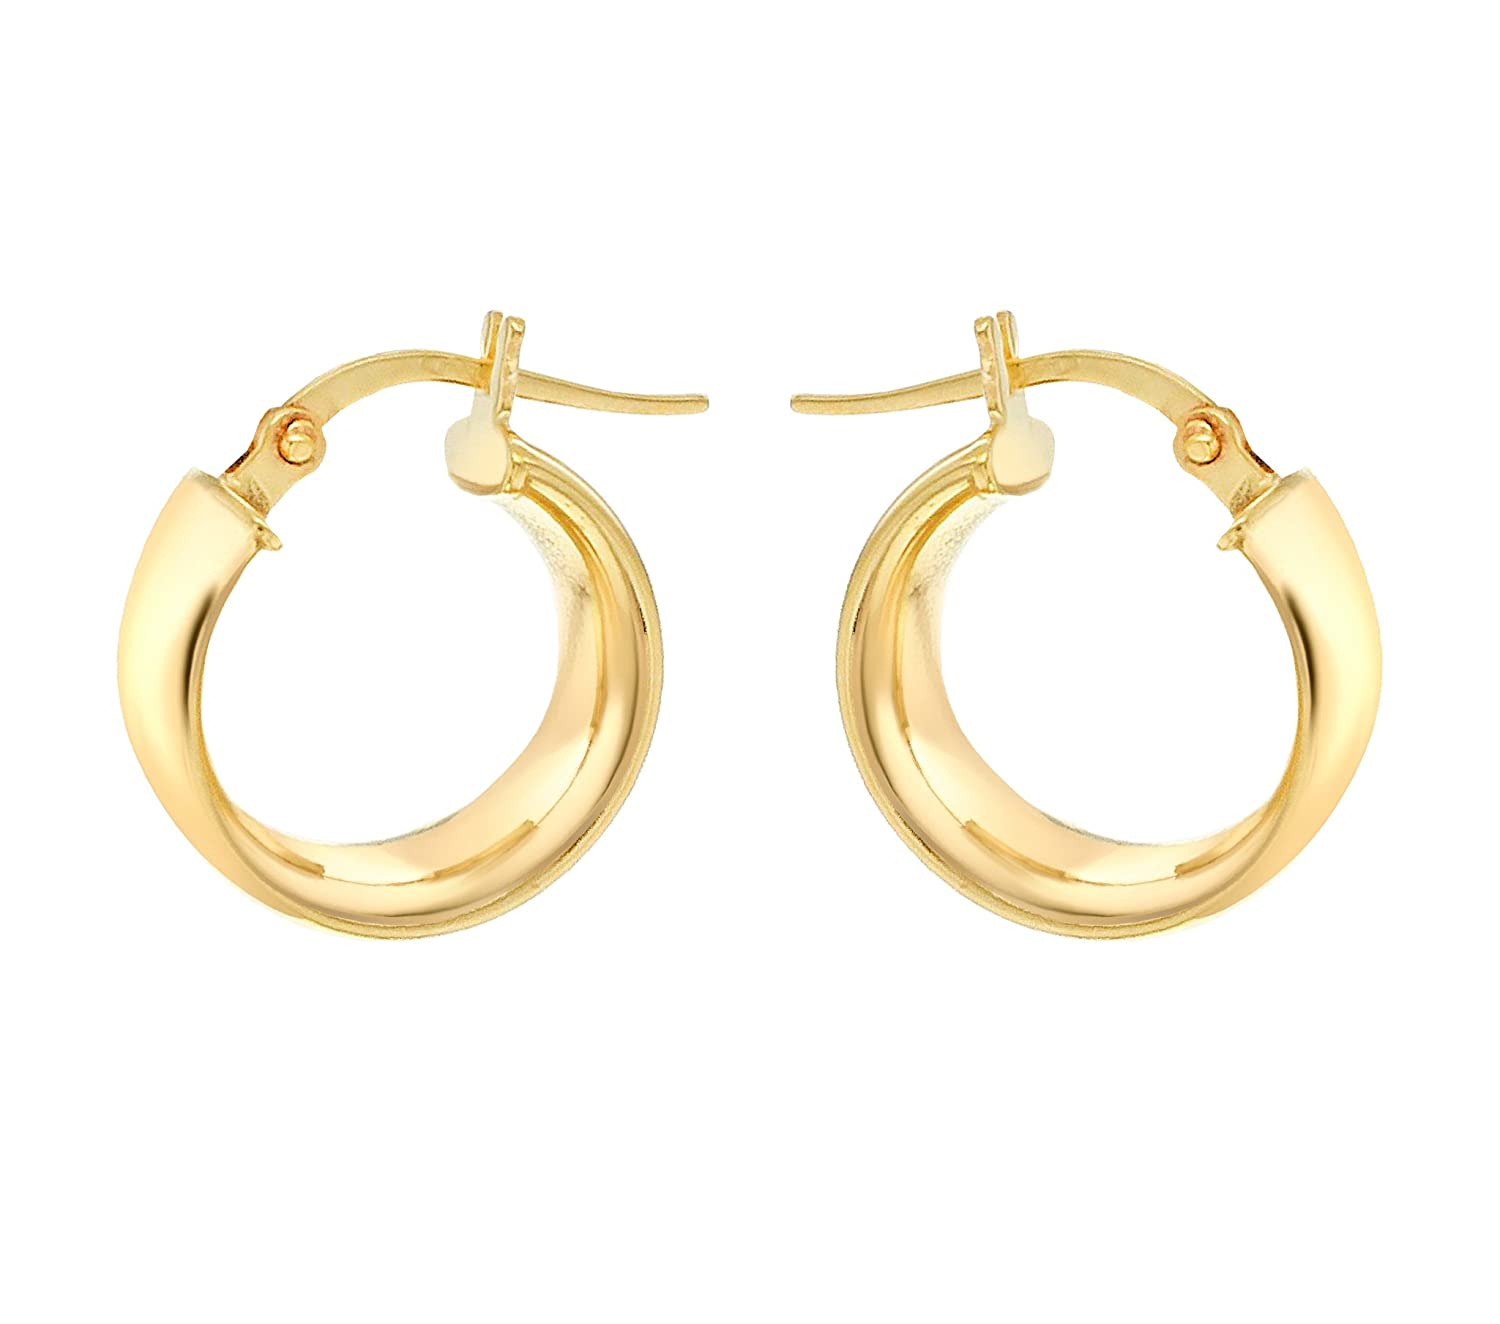 Carissima Gold Women's 9 ct Yellow Gold Band Creole Earrings SQjunVM